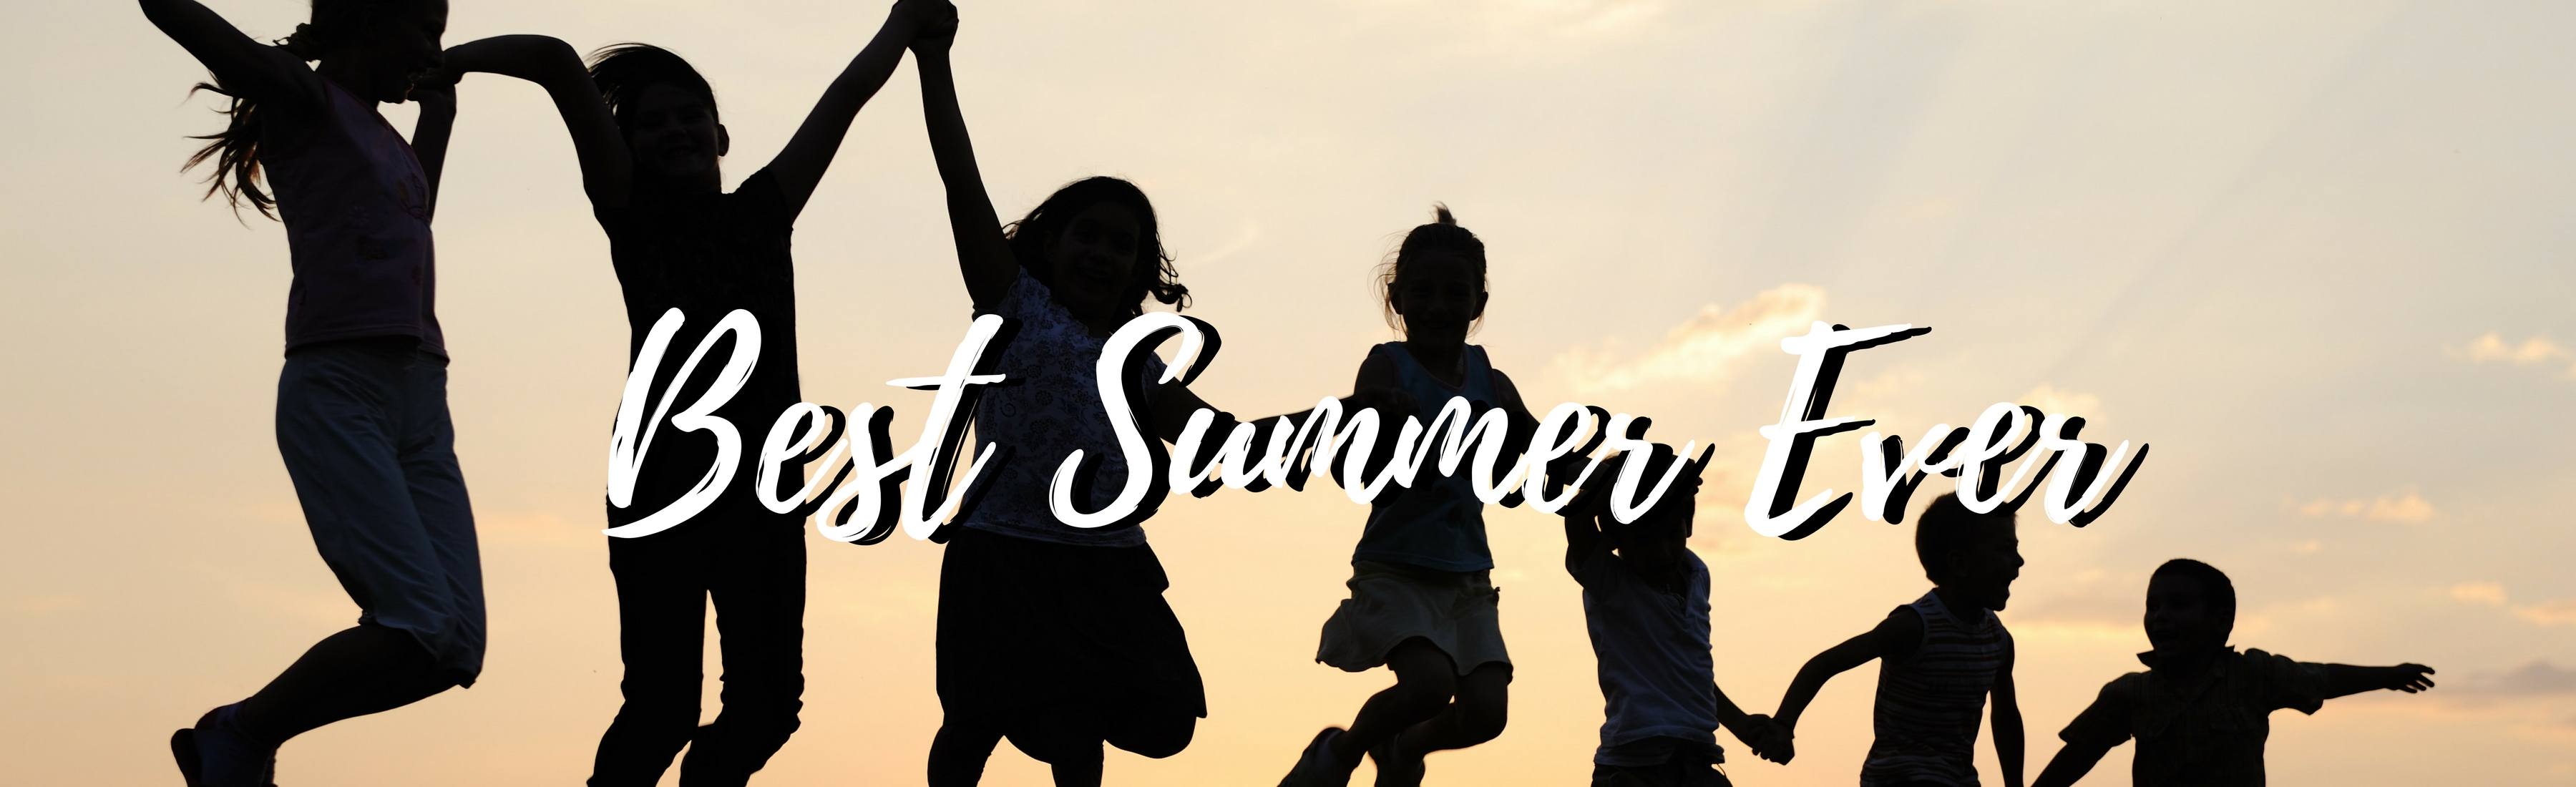 eKids Best Summer Ever Slider 3600x1100